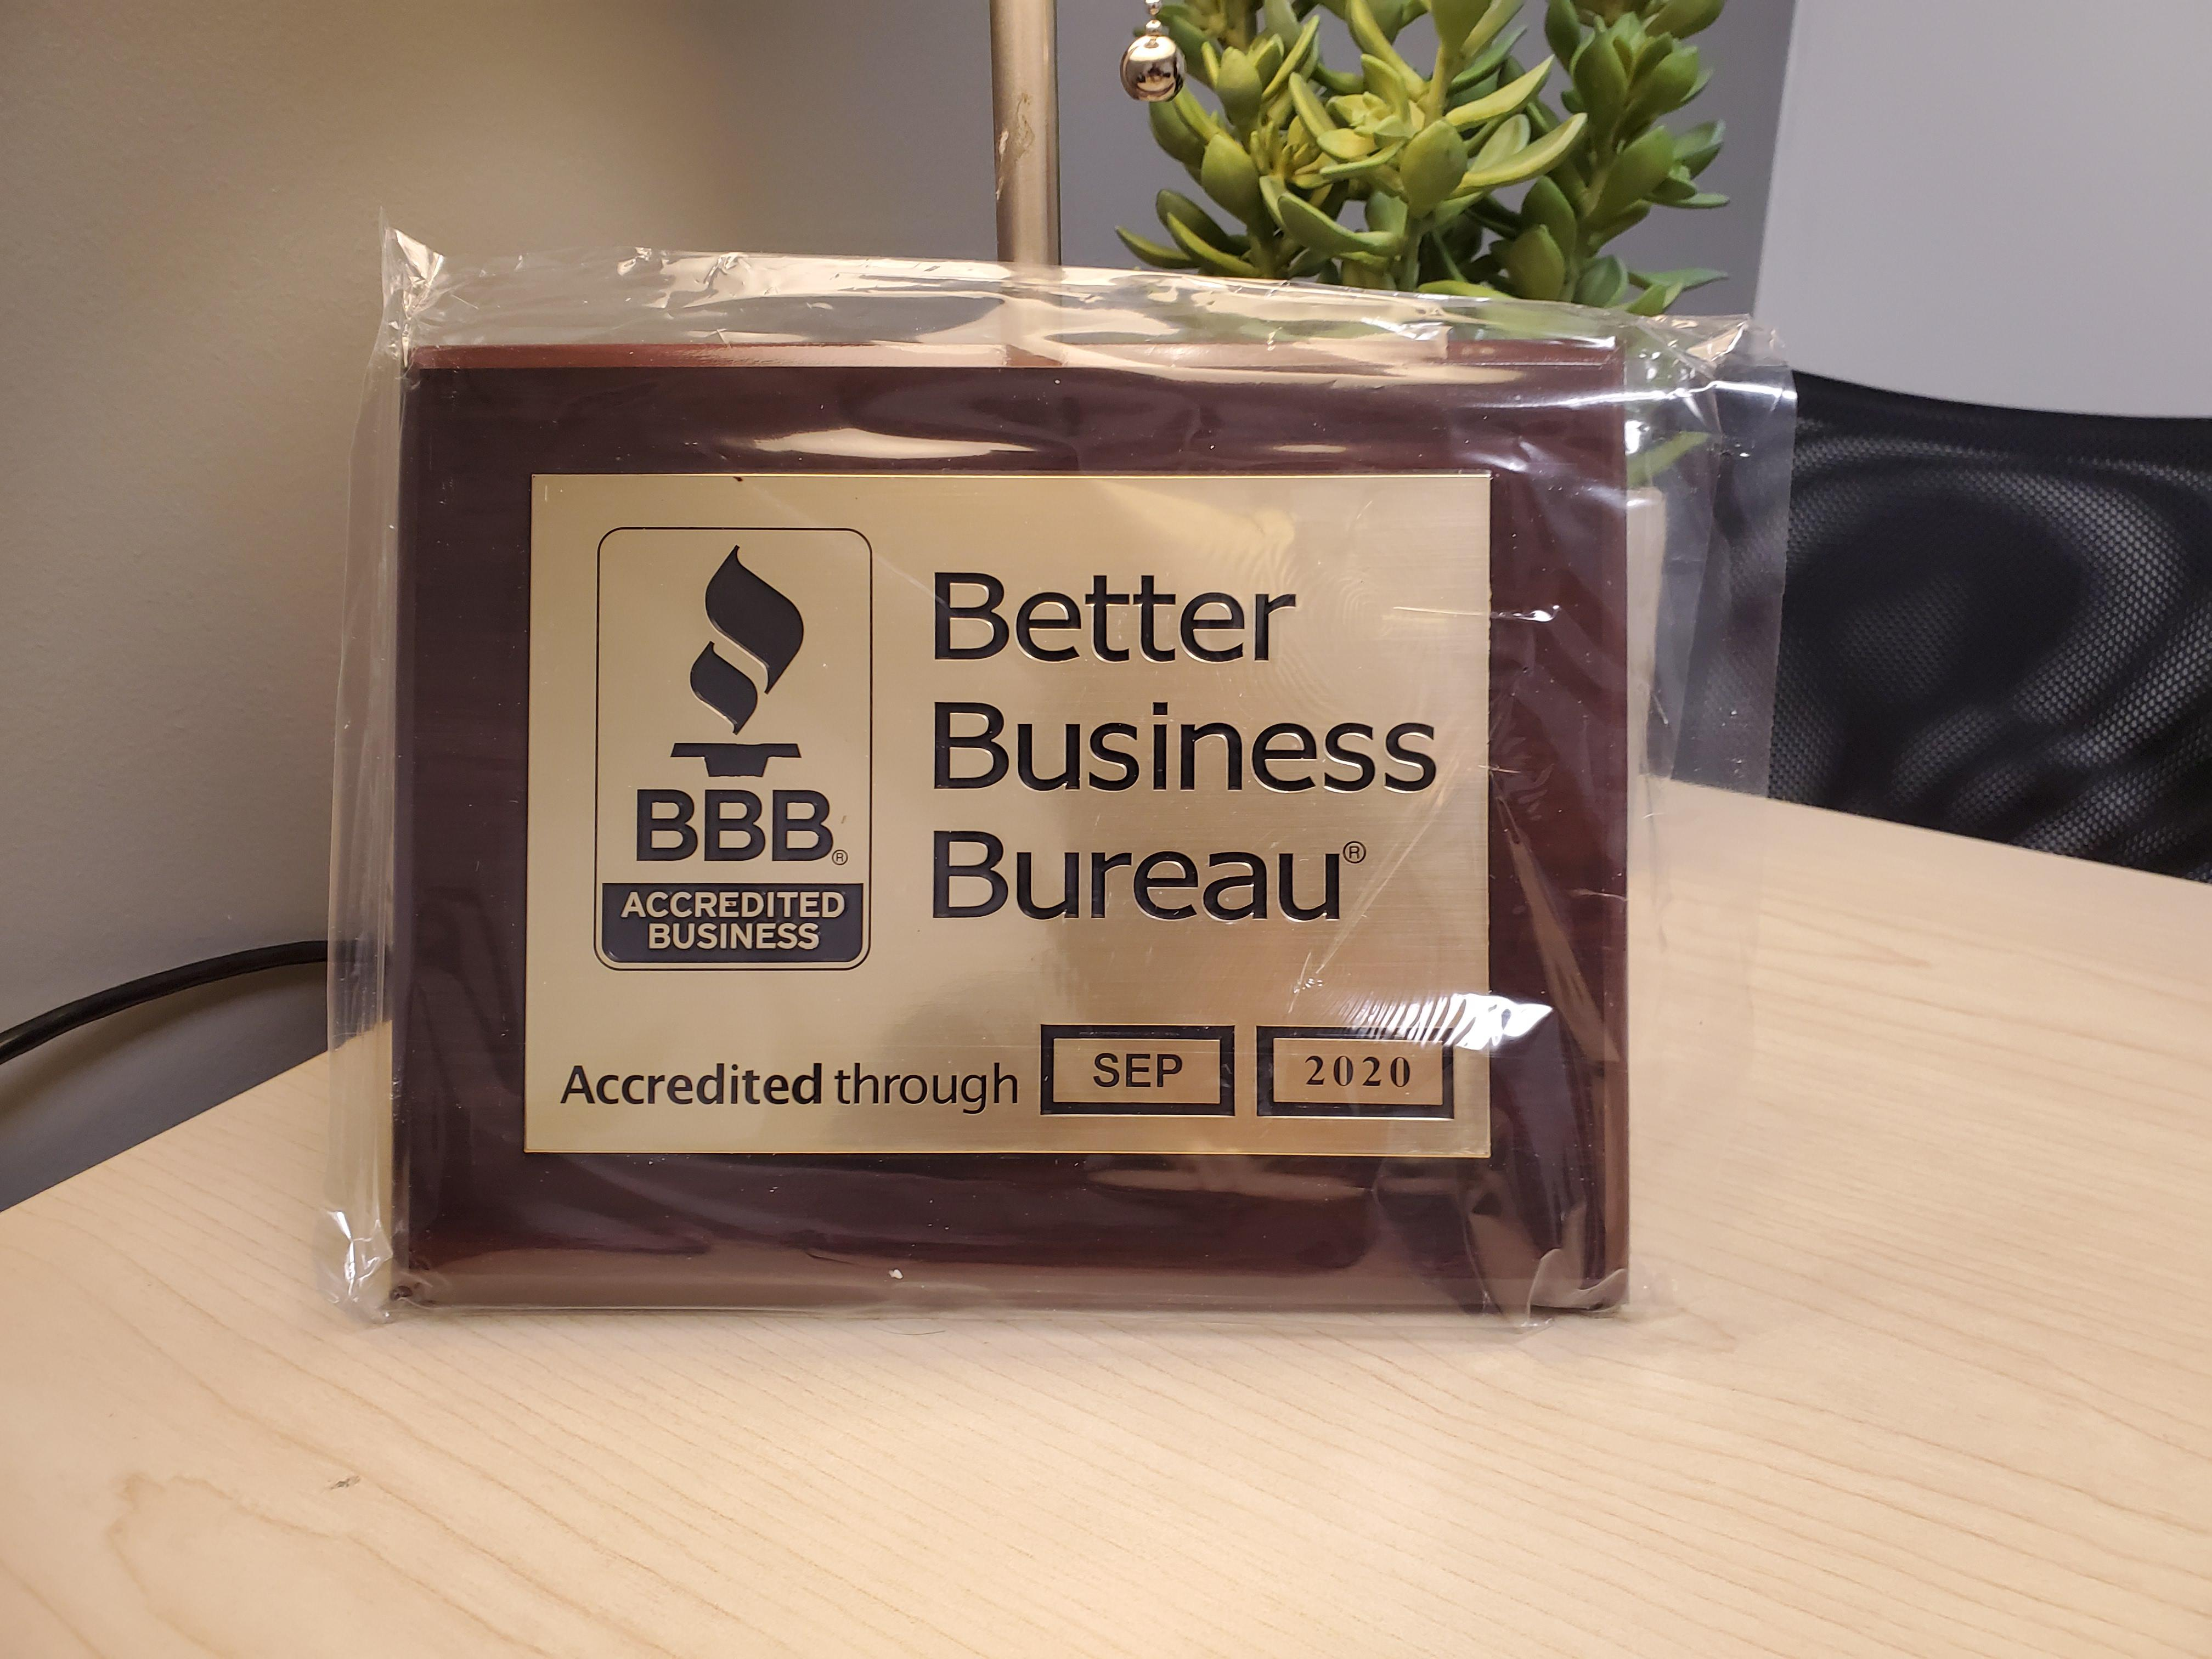 We maintain an A+ rating with the BBB.